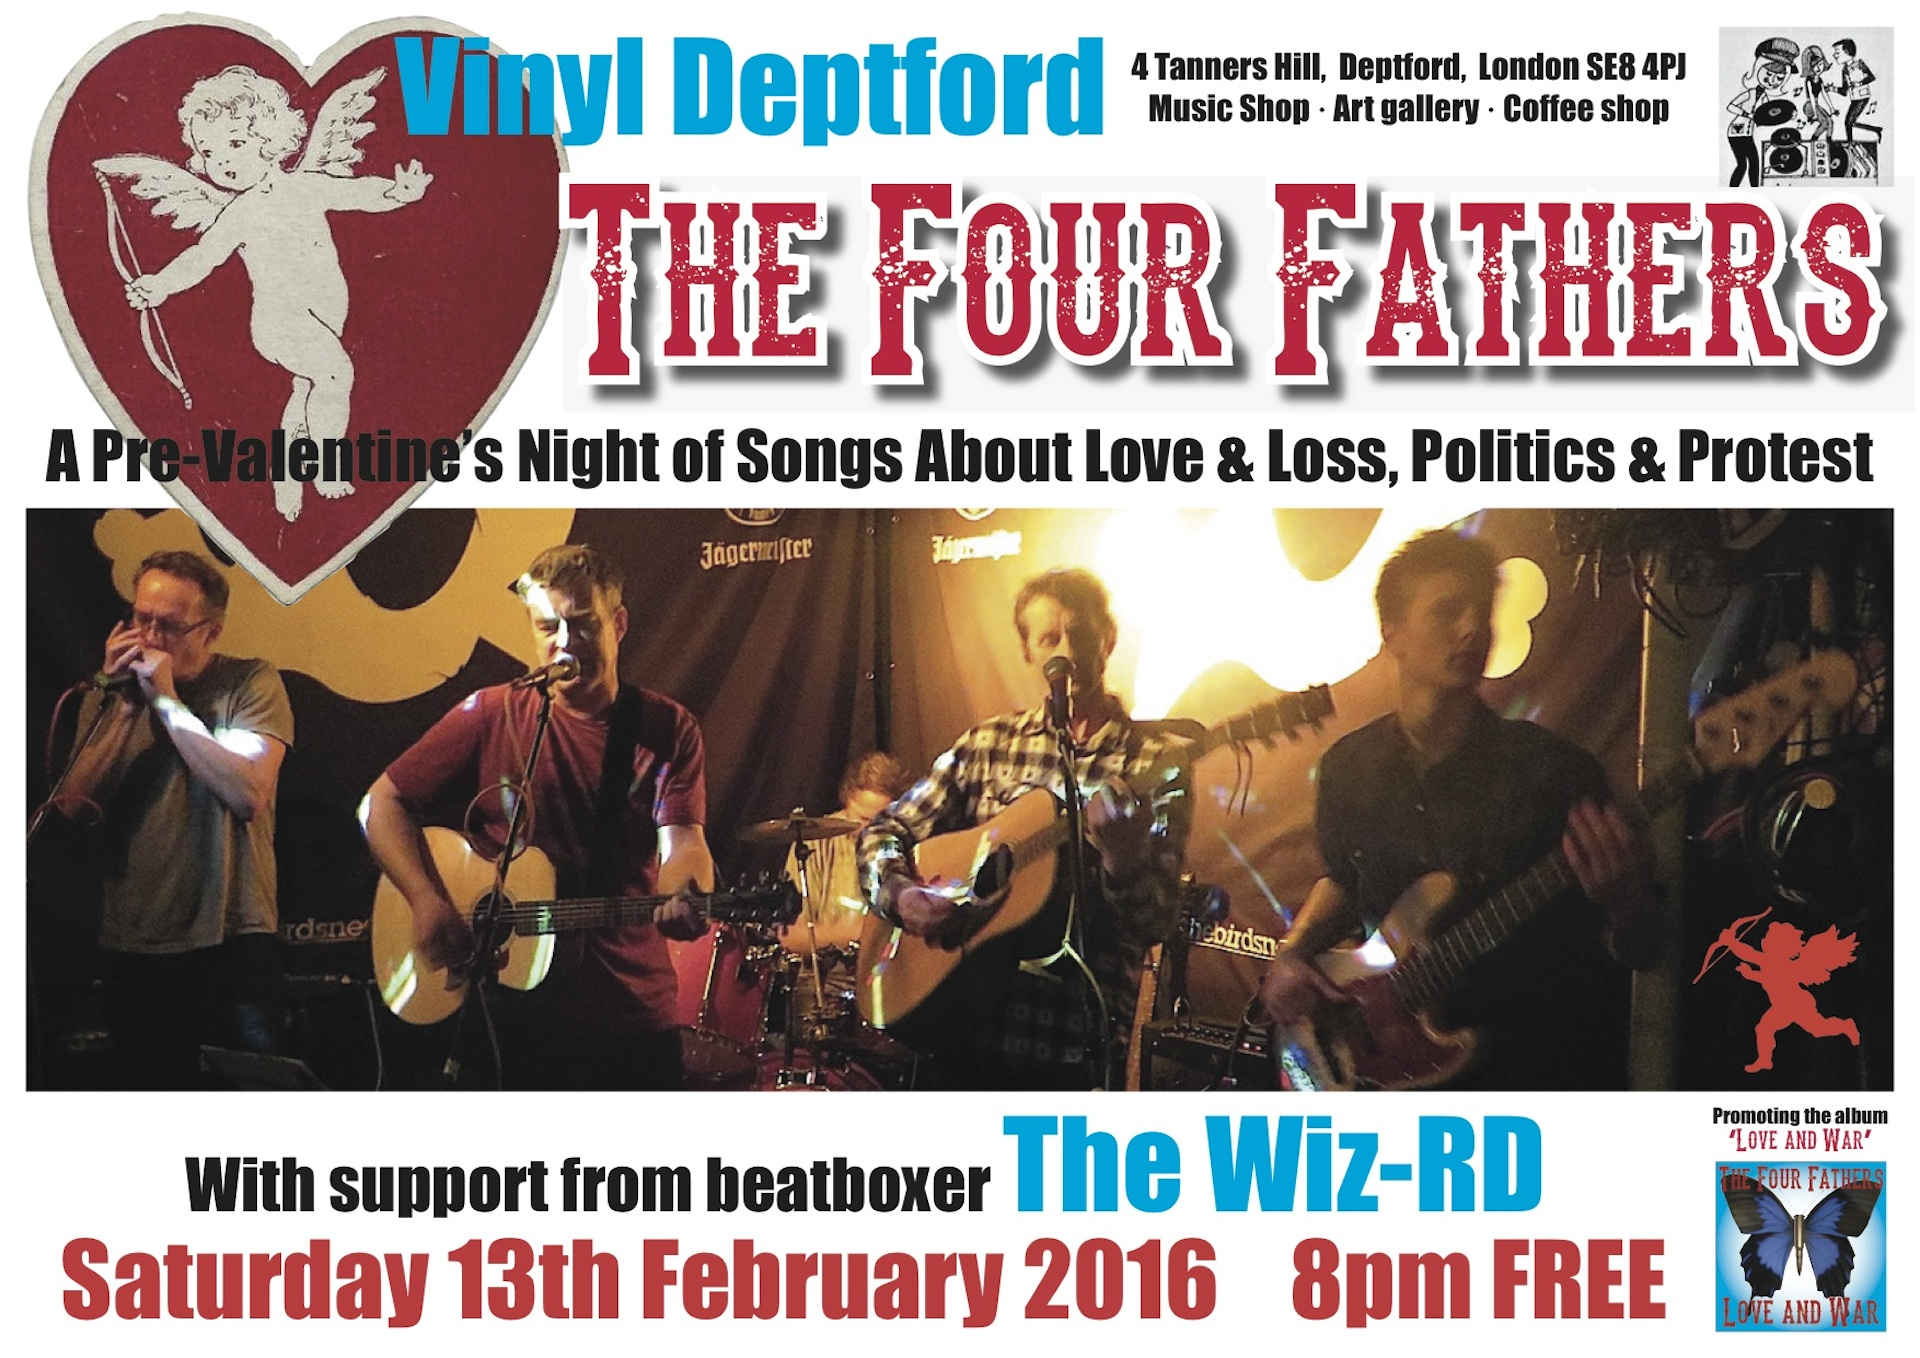 The poster for Andy Worthington's band The Four Fathers' free gig at Vinyl in Deptford on Saturday February 13, 2016 (design by Brendan Horstead).